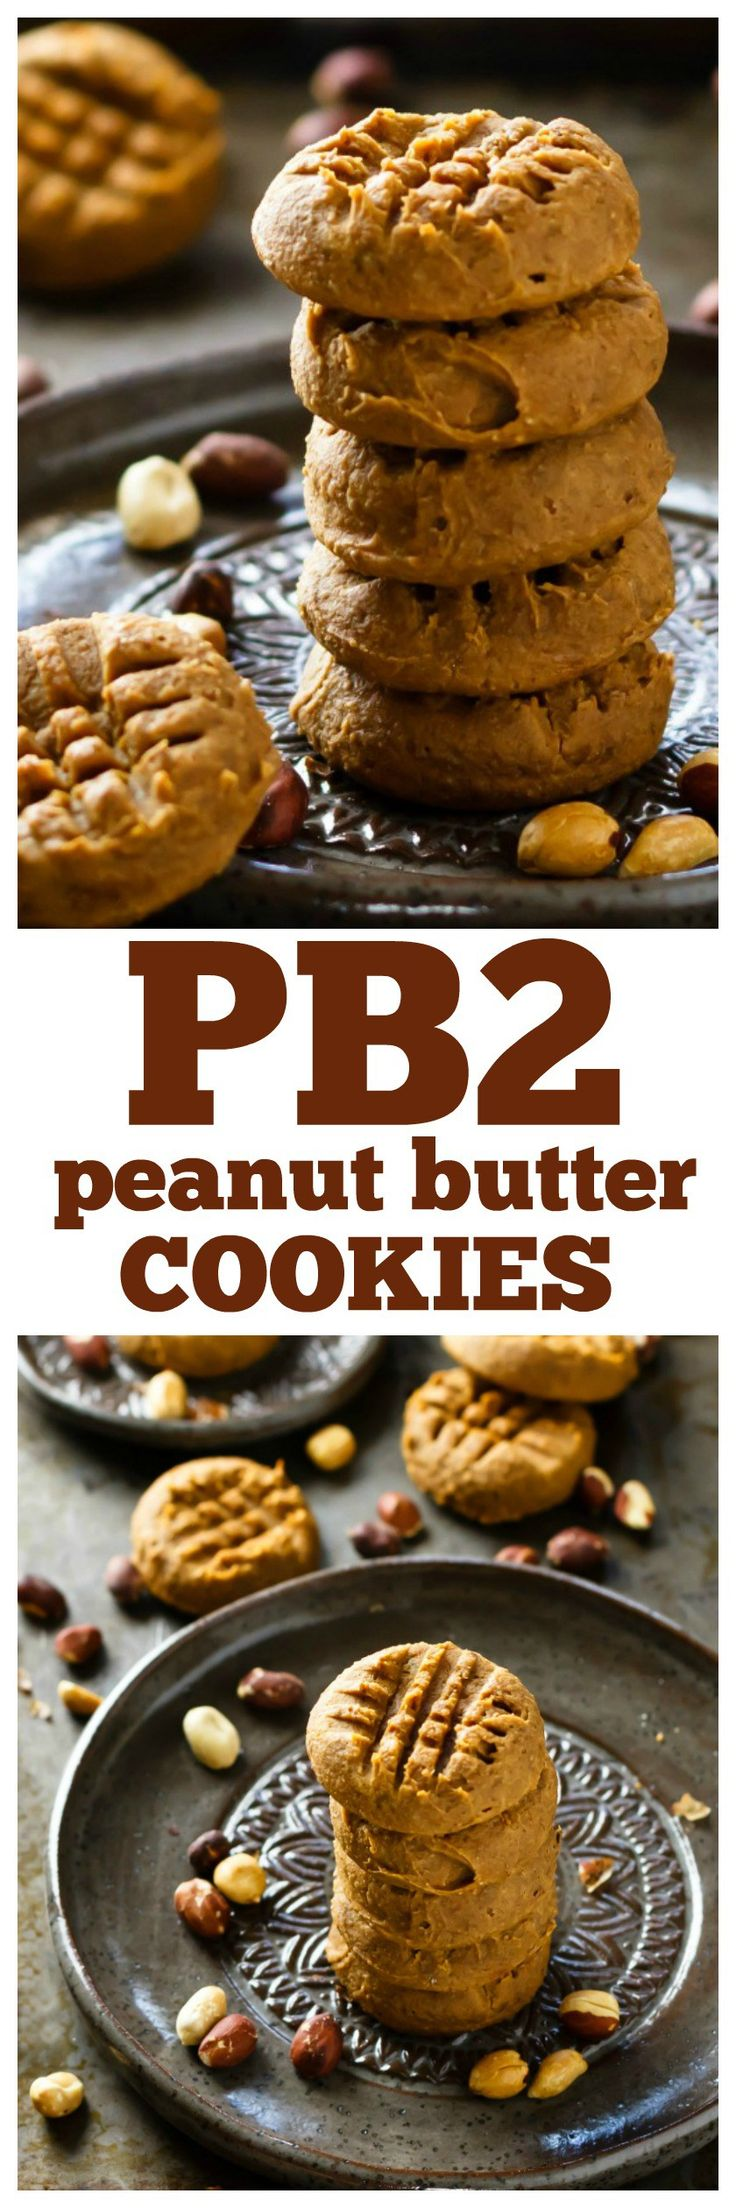 PB2 Peanut Butter Cookies | PB2 Cookies | www.eathealthyeathappy.com